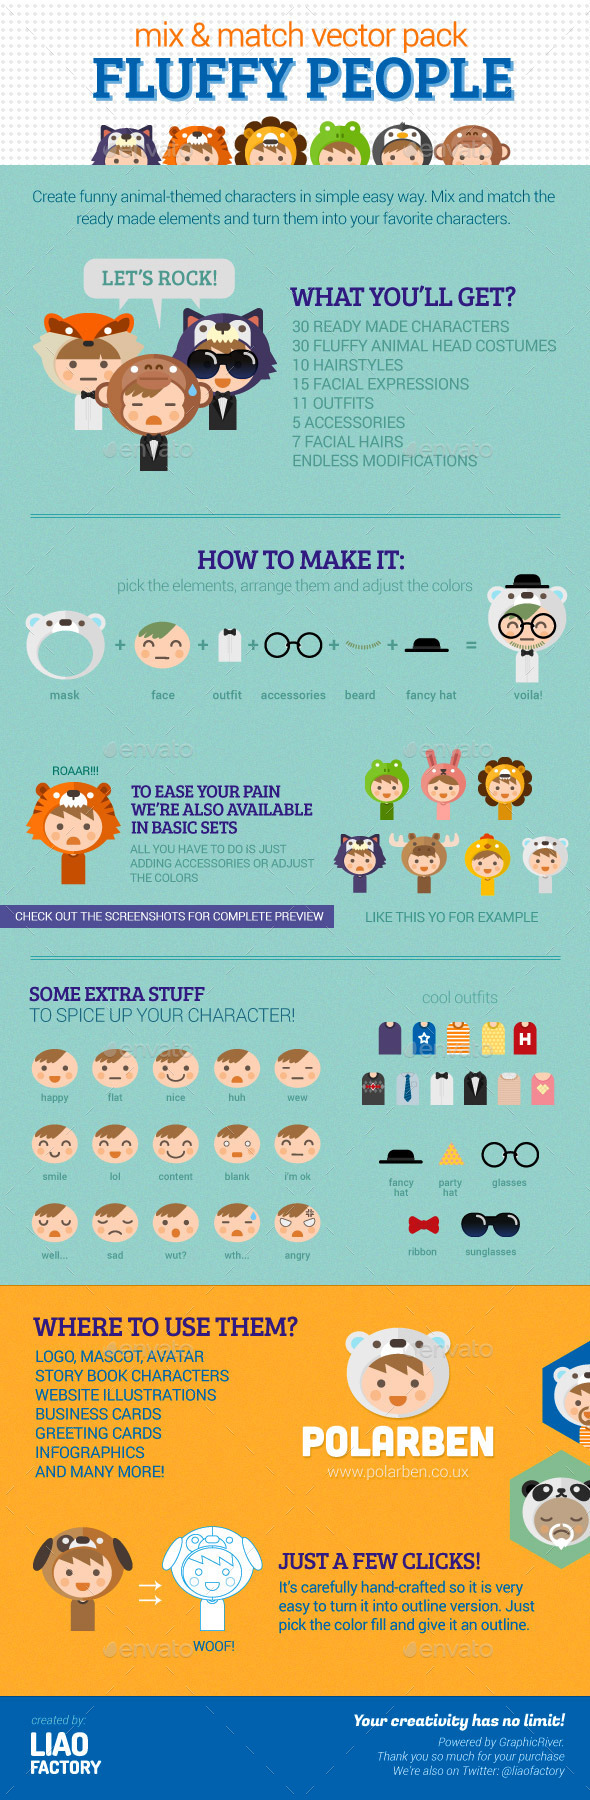 Fluffy People Characters Design Vector Pack - Characters Vectors